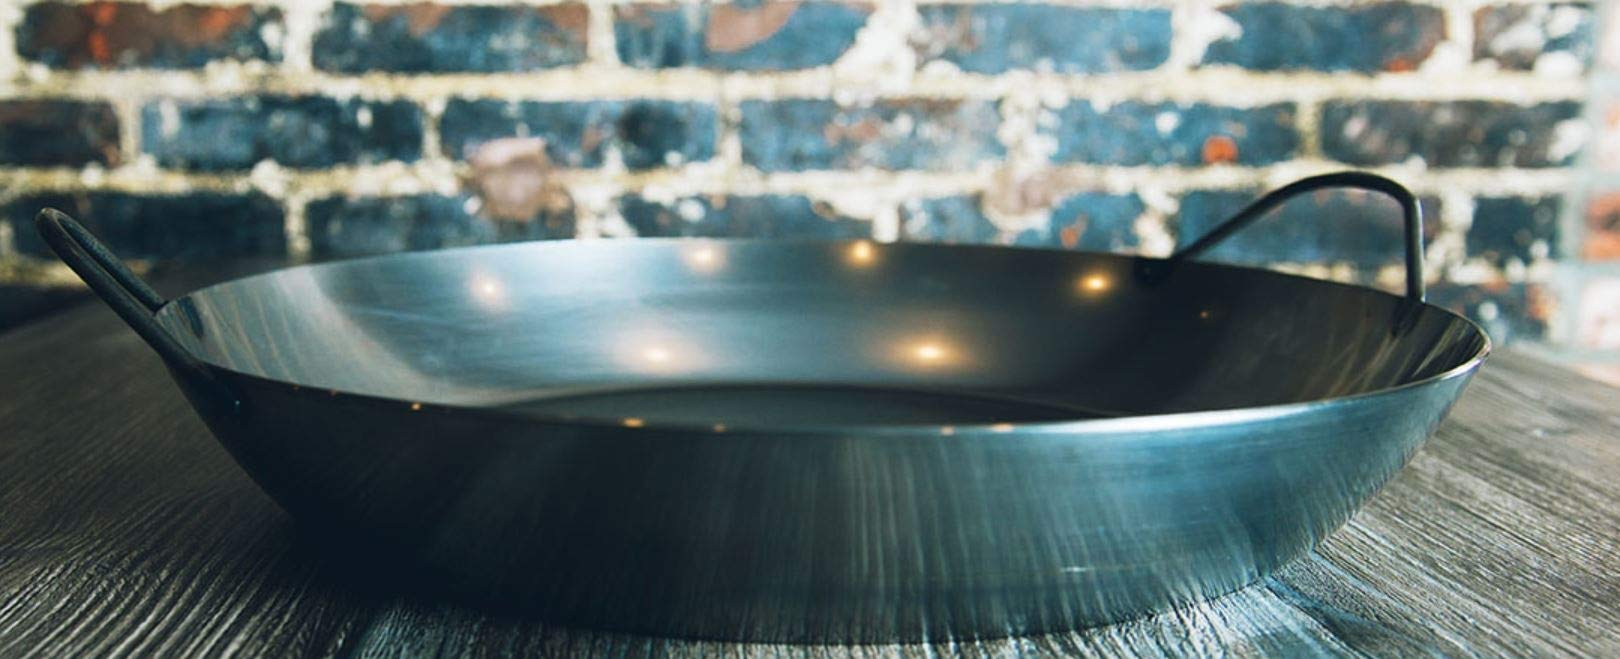 Matfer Bourgeat 062051 Black Steel Paella Pan, 14 1/8'' Diameter